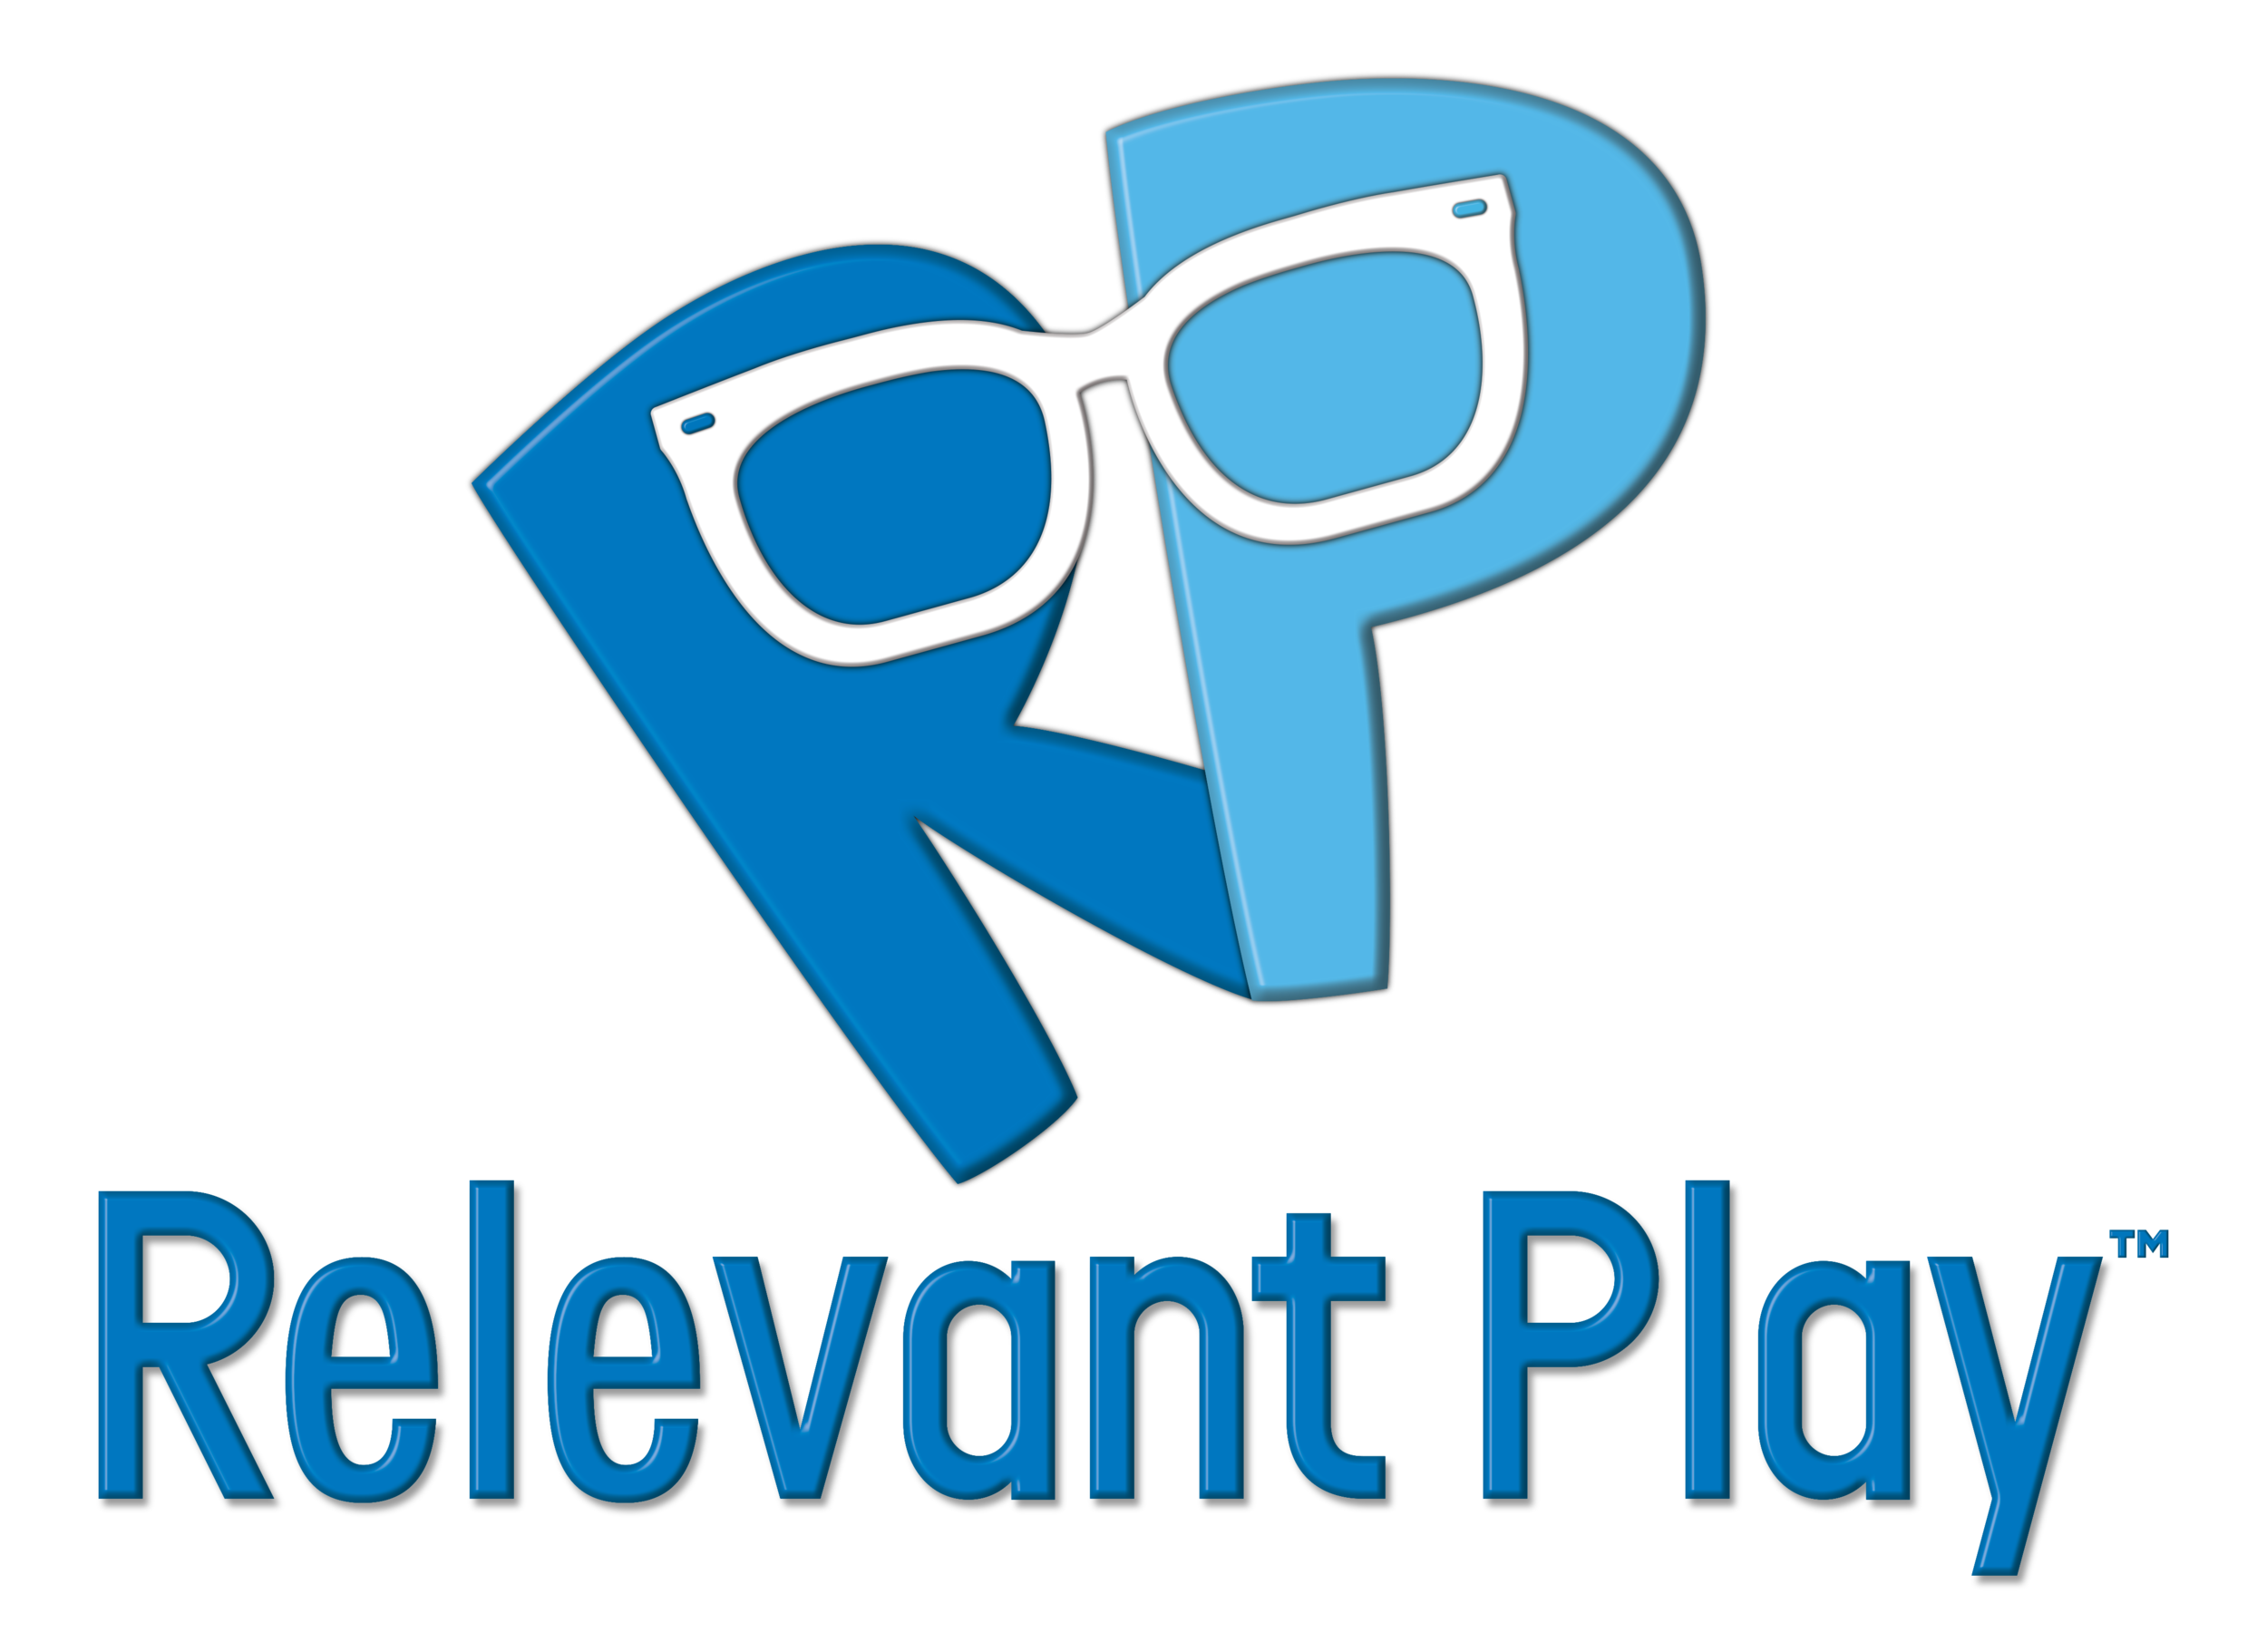 Relevant_Play_Logo.png